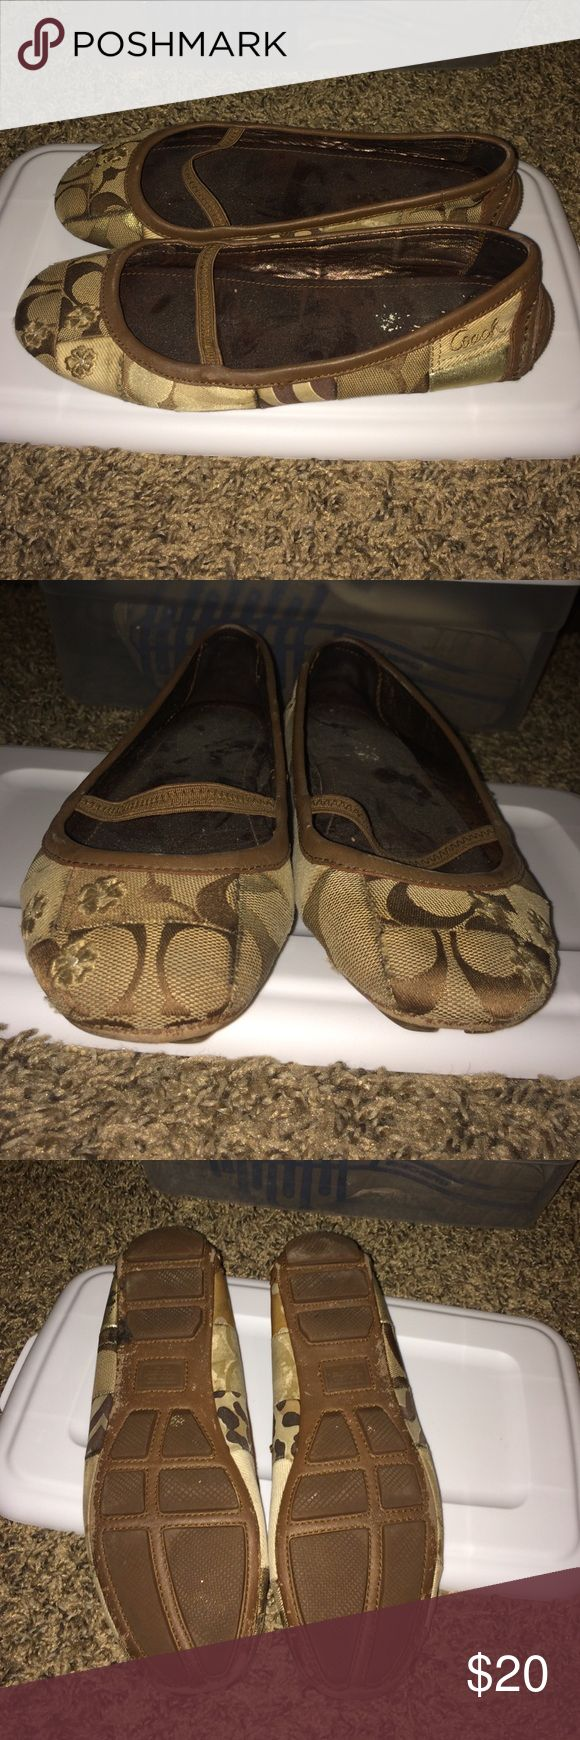 Ballerina Shoes Authentic Coach. Cute leather ballerina. Patchwork. In good shape! Was once soak in water so the insole lost it's shine effect. Some scuffs and stains in some areas but because it's patchwork you will barely notice. It's still beautiful. Size 6M Coach Shoes Sandals